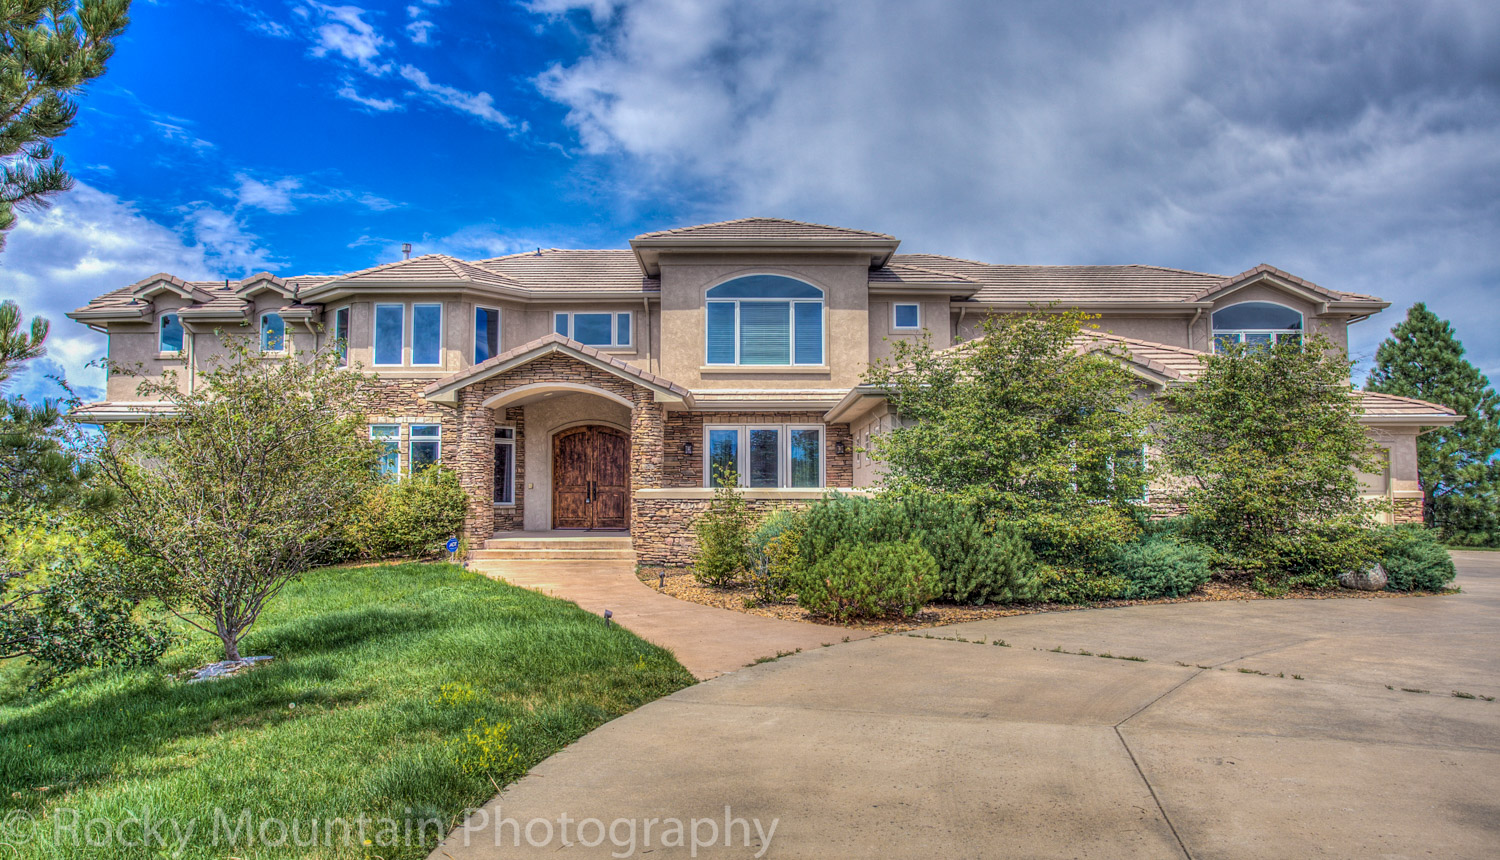 Residential Real Estate HDR Exterior-10